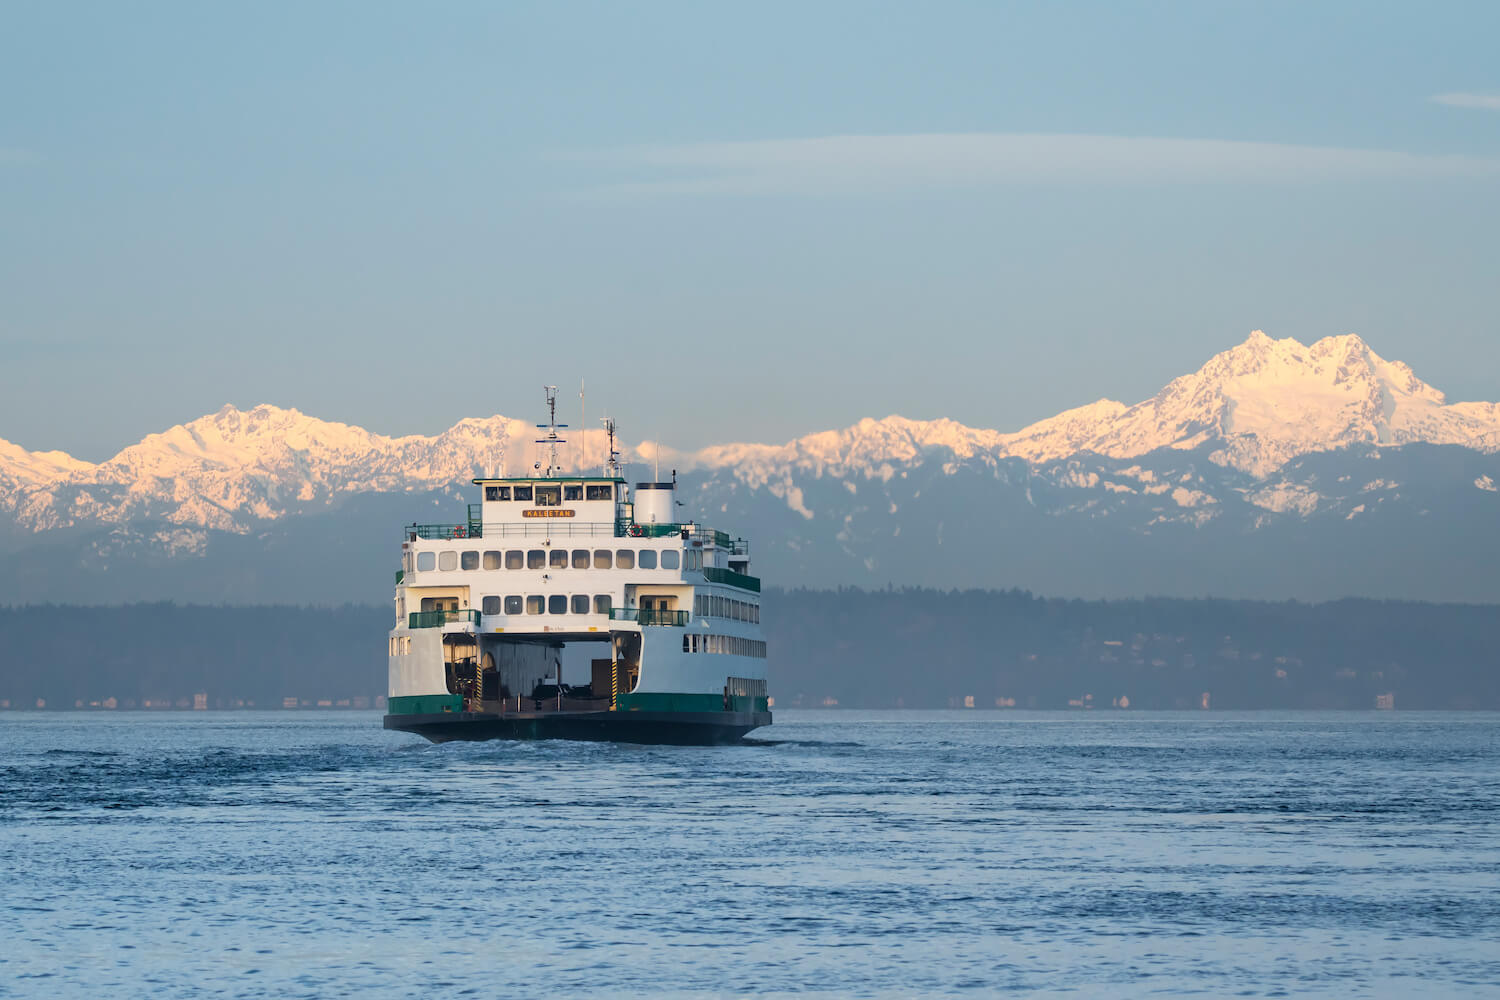 A Washington State Ferry crosses a channel of the Puget Sound, en route to the Olympic Peninsula. The snow capped mountains shine in front of a blue sky and layers of evergreen trees are seen closer to the ferry, which glides through lightly rolling water.